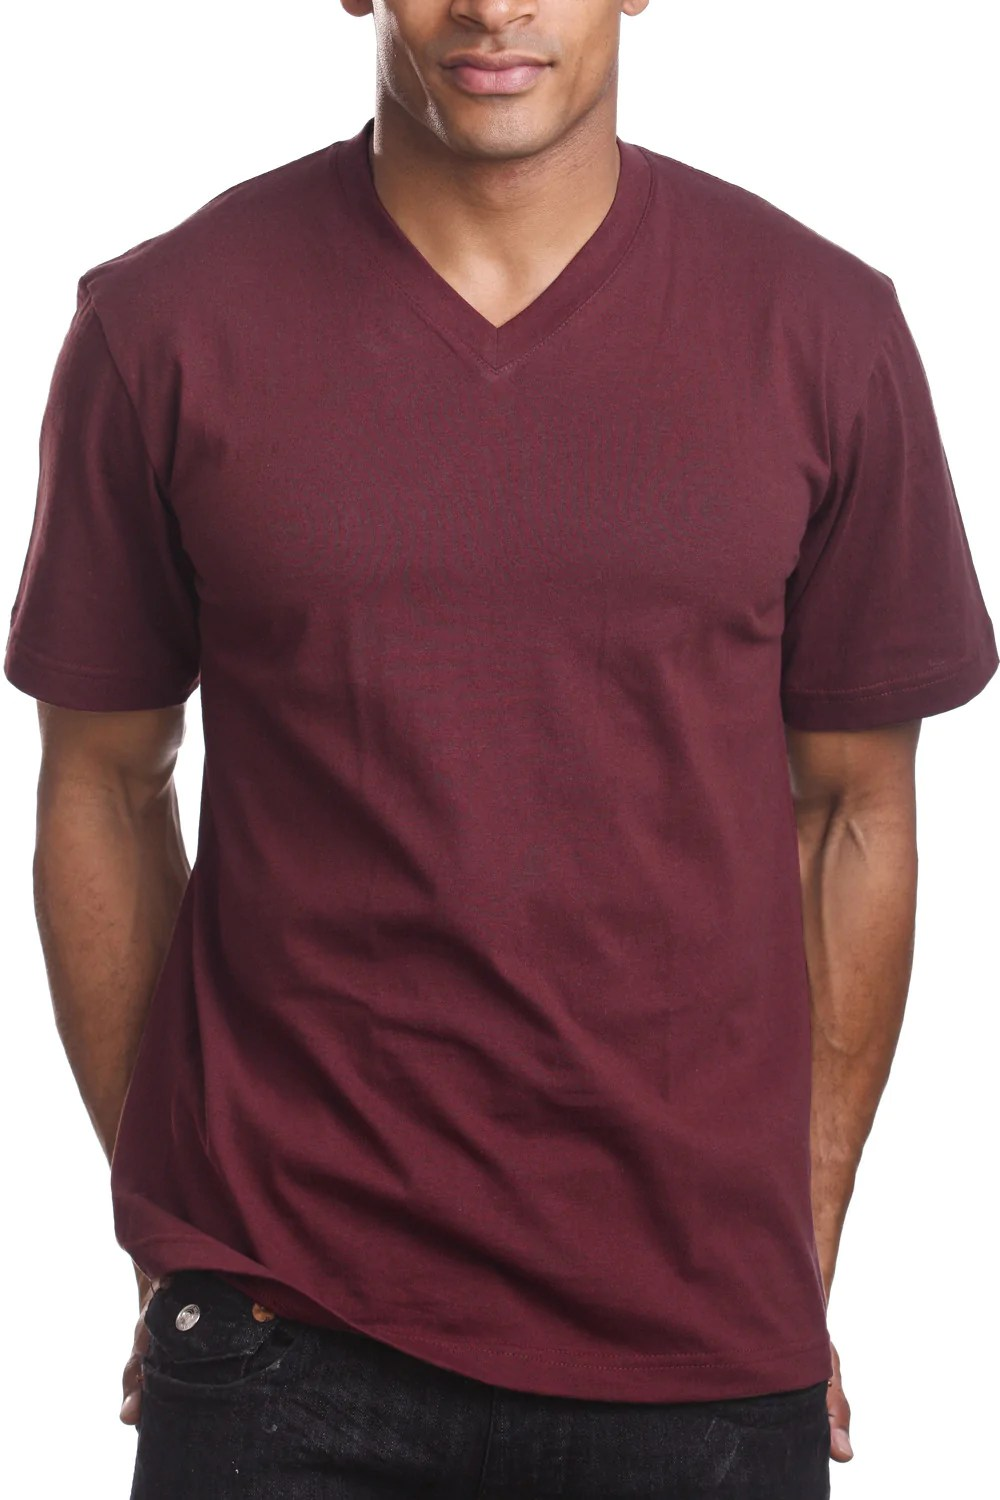 V Neck T Shirt V-neck T-shirt 2xl - 5xl – Pro 5 Apparel